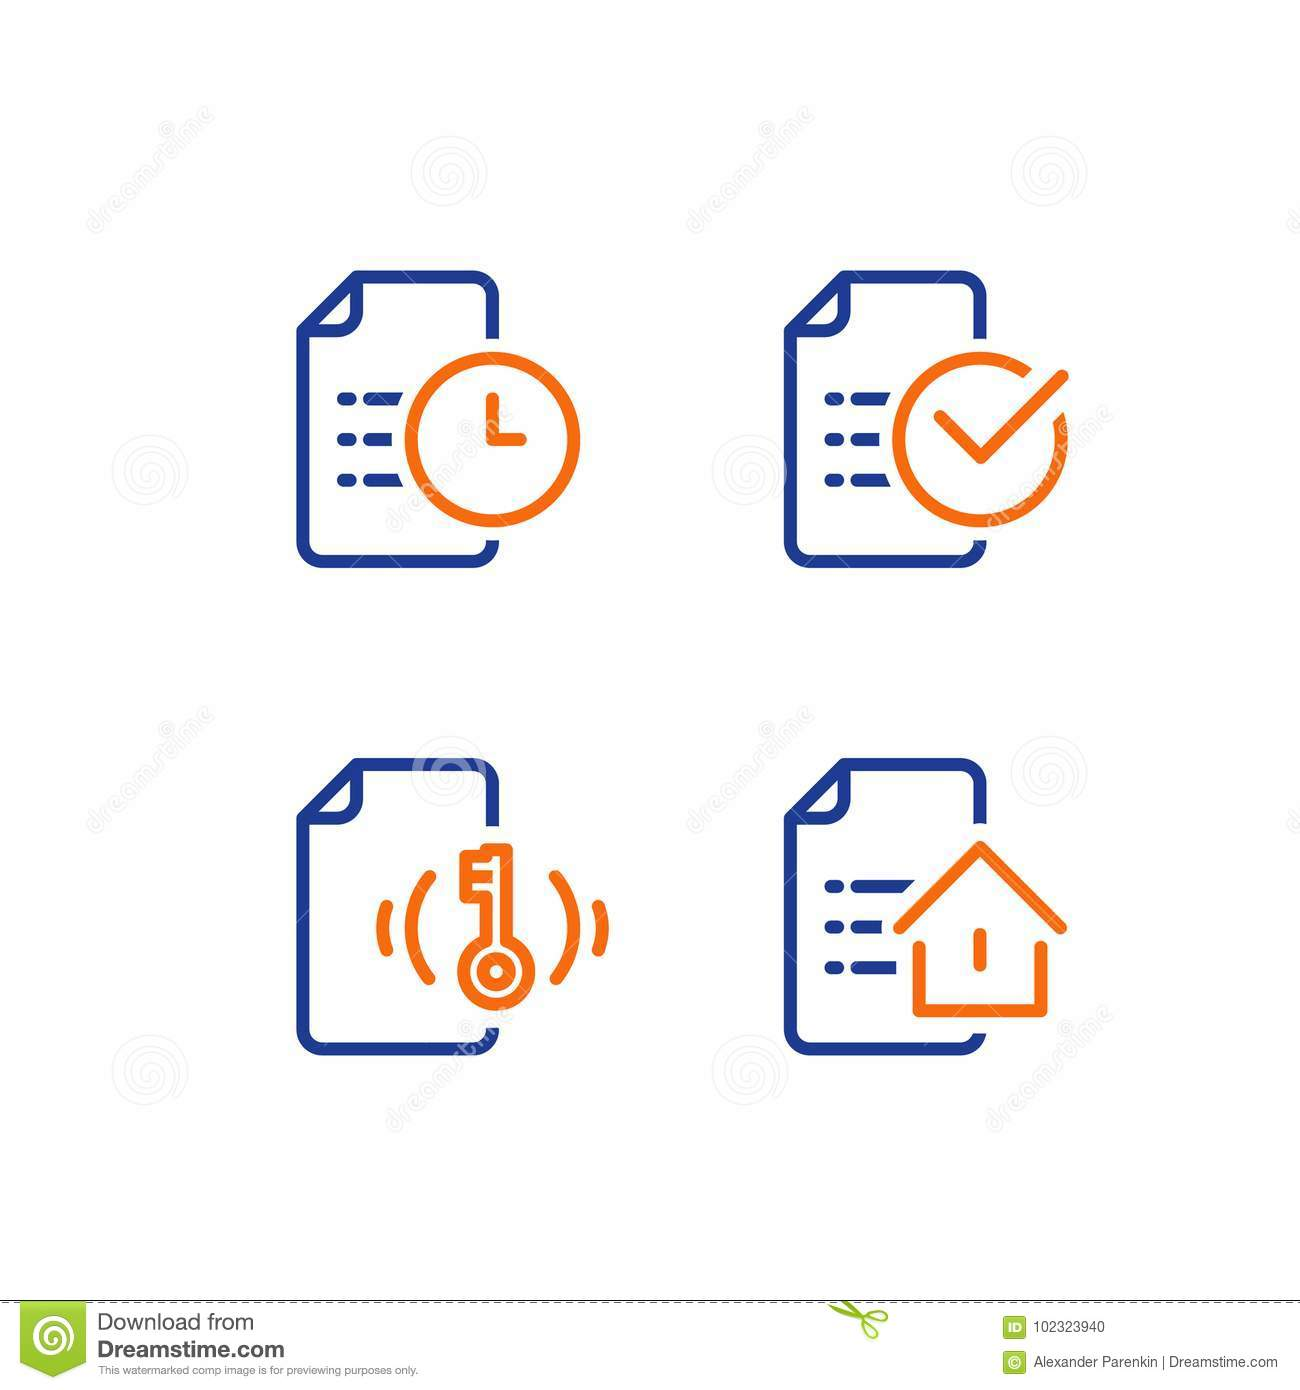 Rental house contract creation, mortgage application form, home loan terms and conditions, real estate concept, vector icon